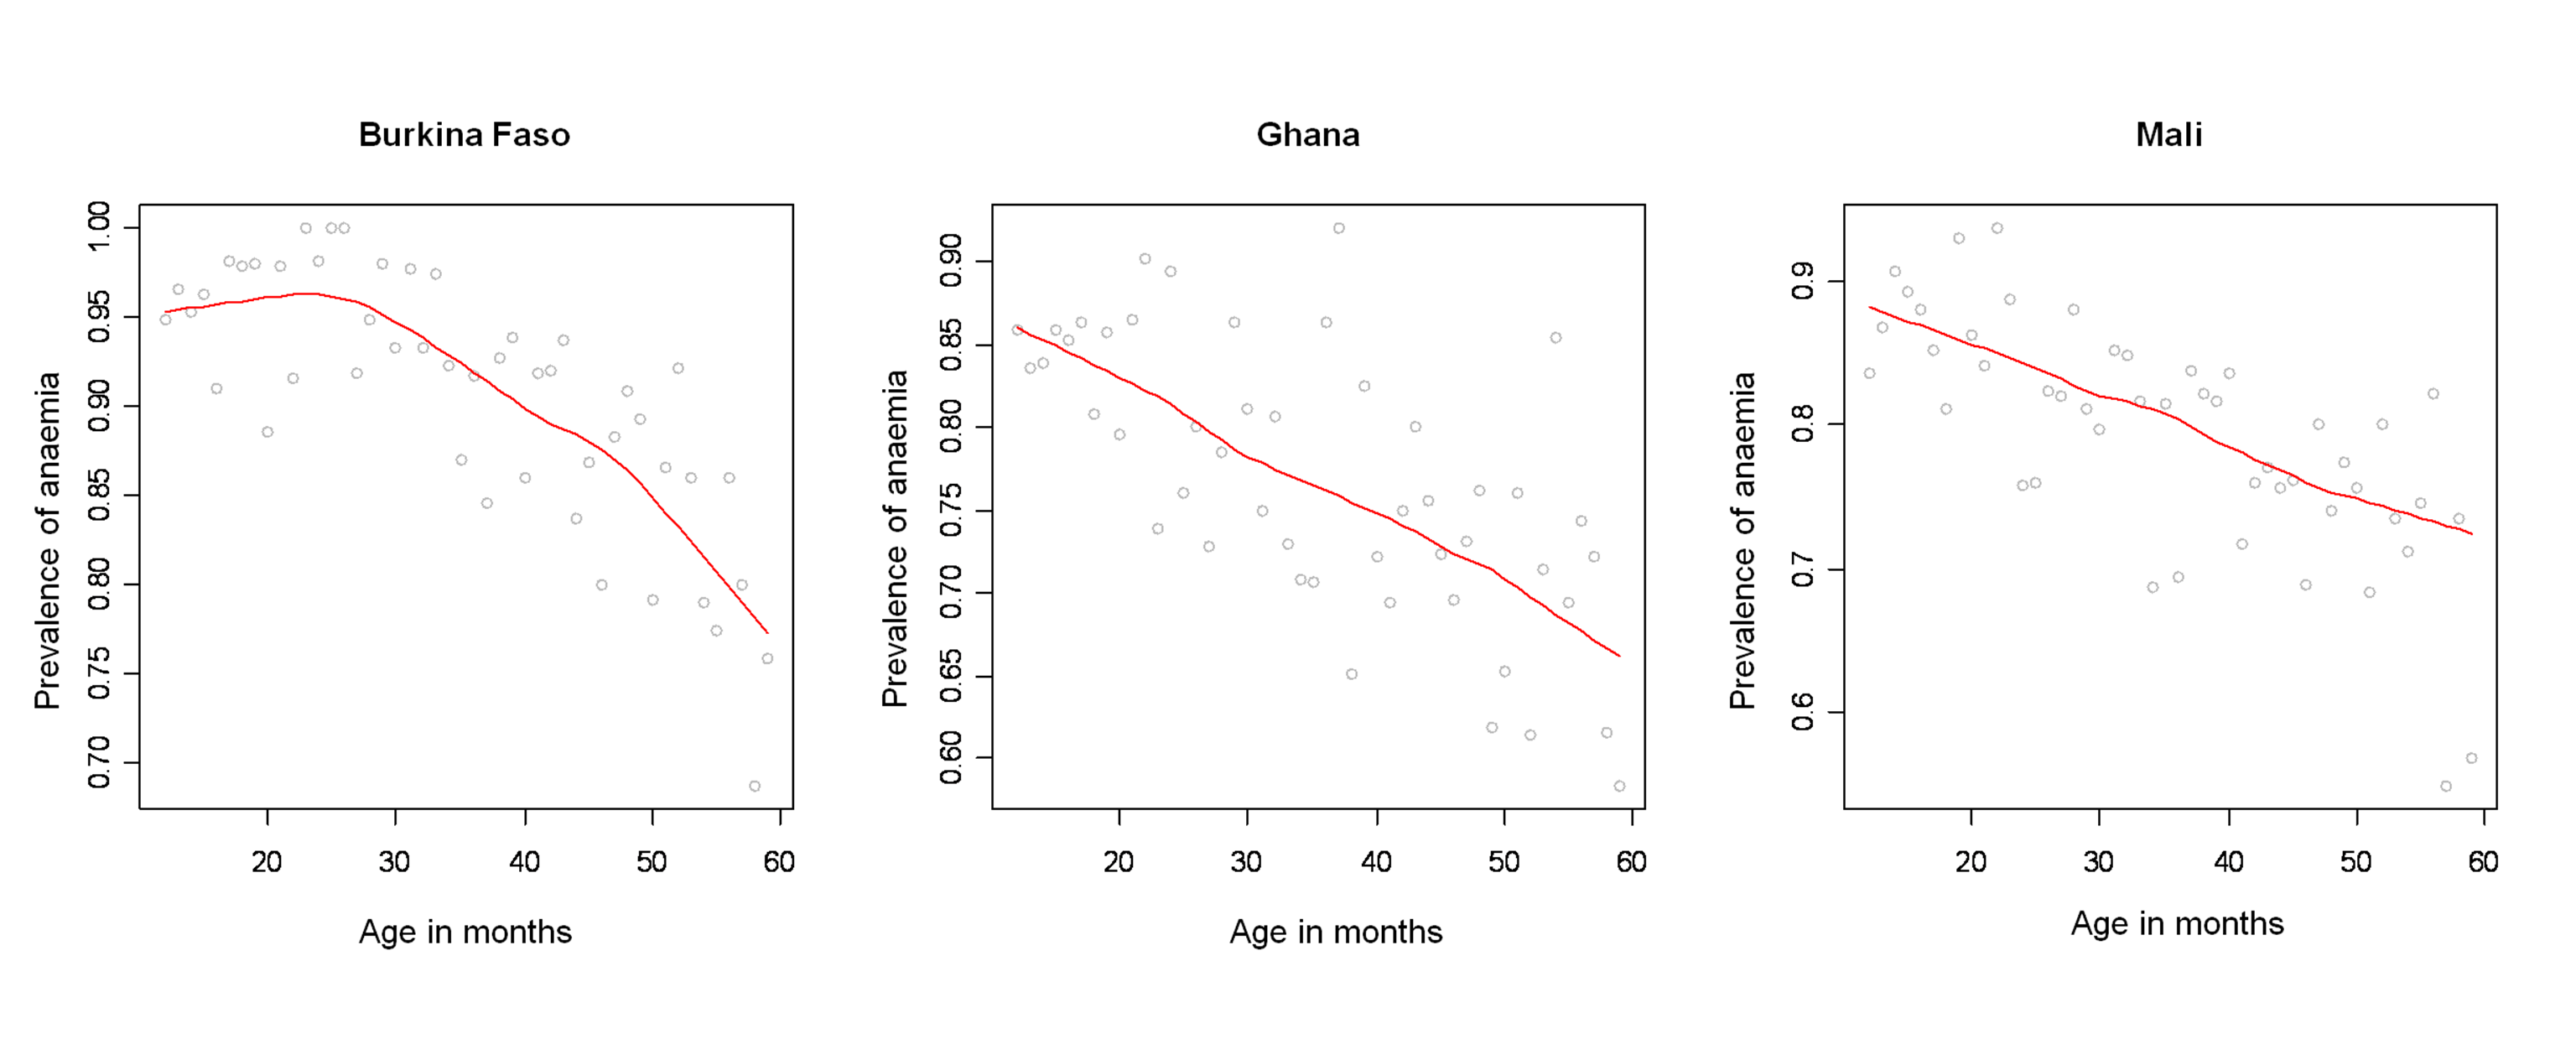 Profile of anaemia by age in Burkina Faso, Ghana, and Mali.